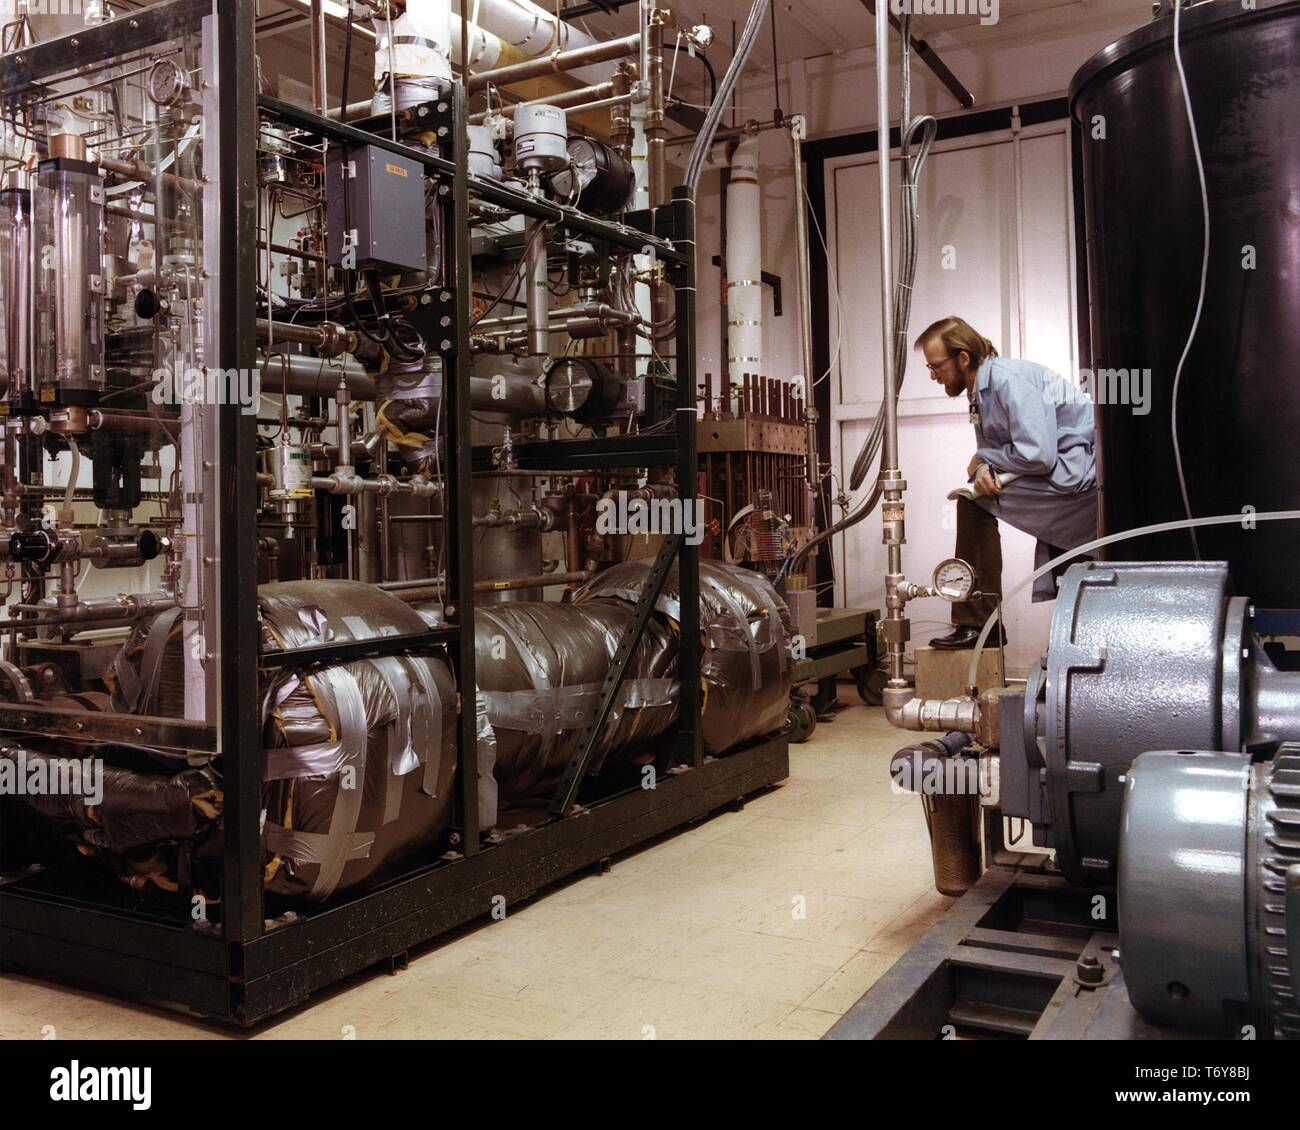 Fuel Cell Stack Stock Photos & Fuel Cell Stack Stock Images - Alamy